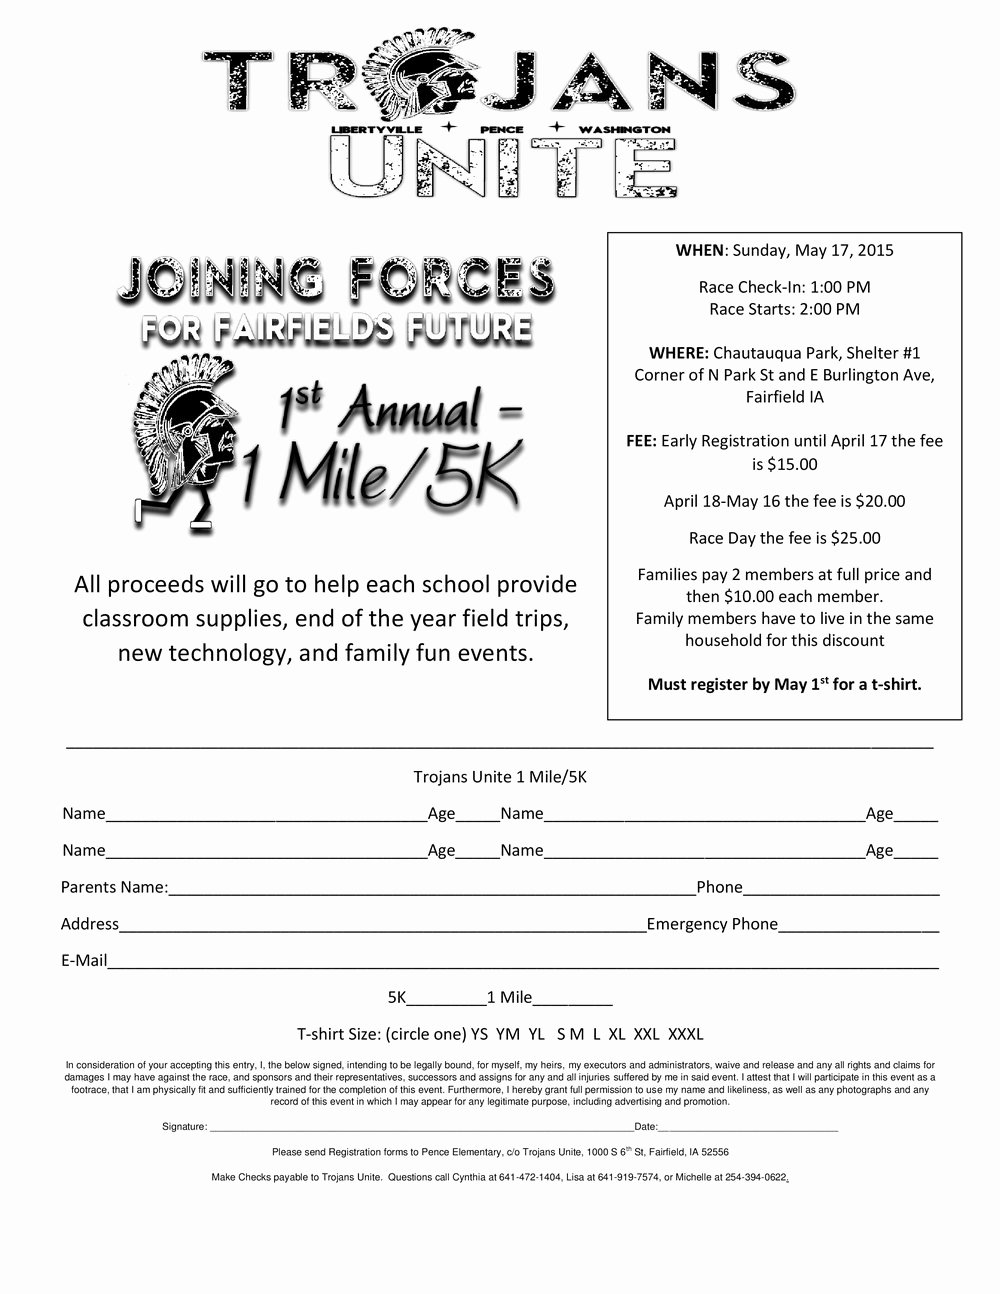 5k Registration form Template Fresh Race Bib Template Templates Mtqxoty